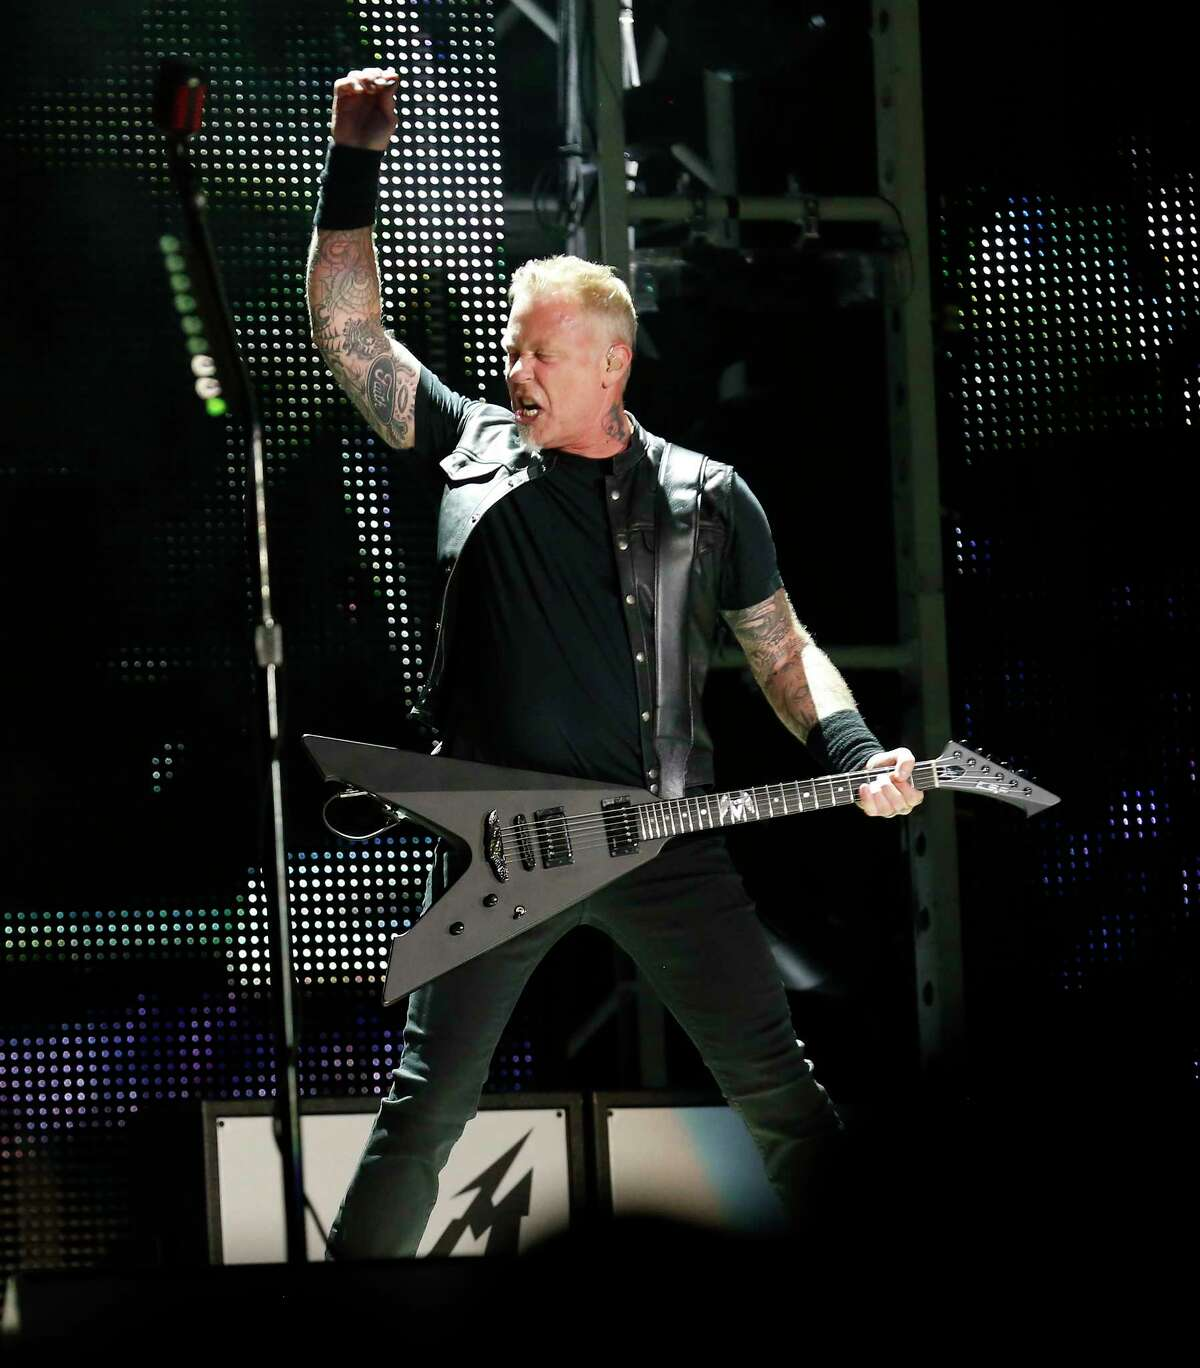 Metallica performs at the Alamodome as part of their North American WorldWired Tour on Wednesday, June 14, 2017. Band members James Hatfield, Robert Trujillo, Lars Ulrich and Kirk Hammett rocked the Alamodome crowd into a frenzy as they kicked off the show with a short video rendition of The Unforgiven then the band roared with Hardwired followed with Atlas, Rise! and then For Whom the Bell Tolls.